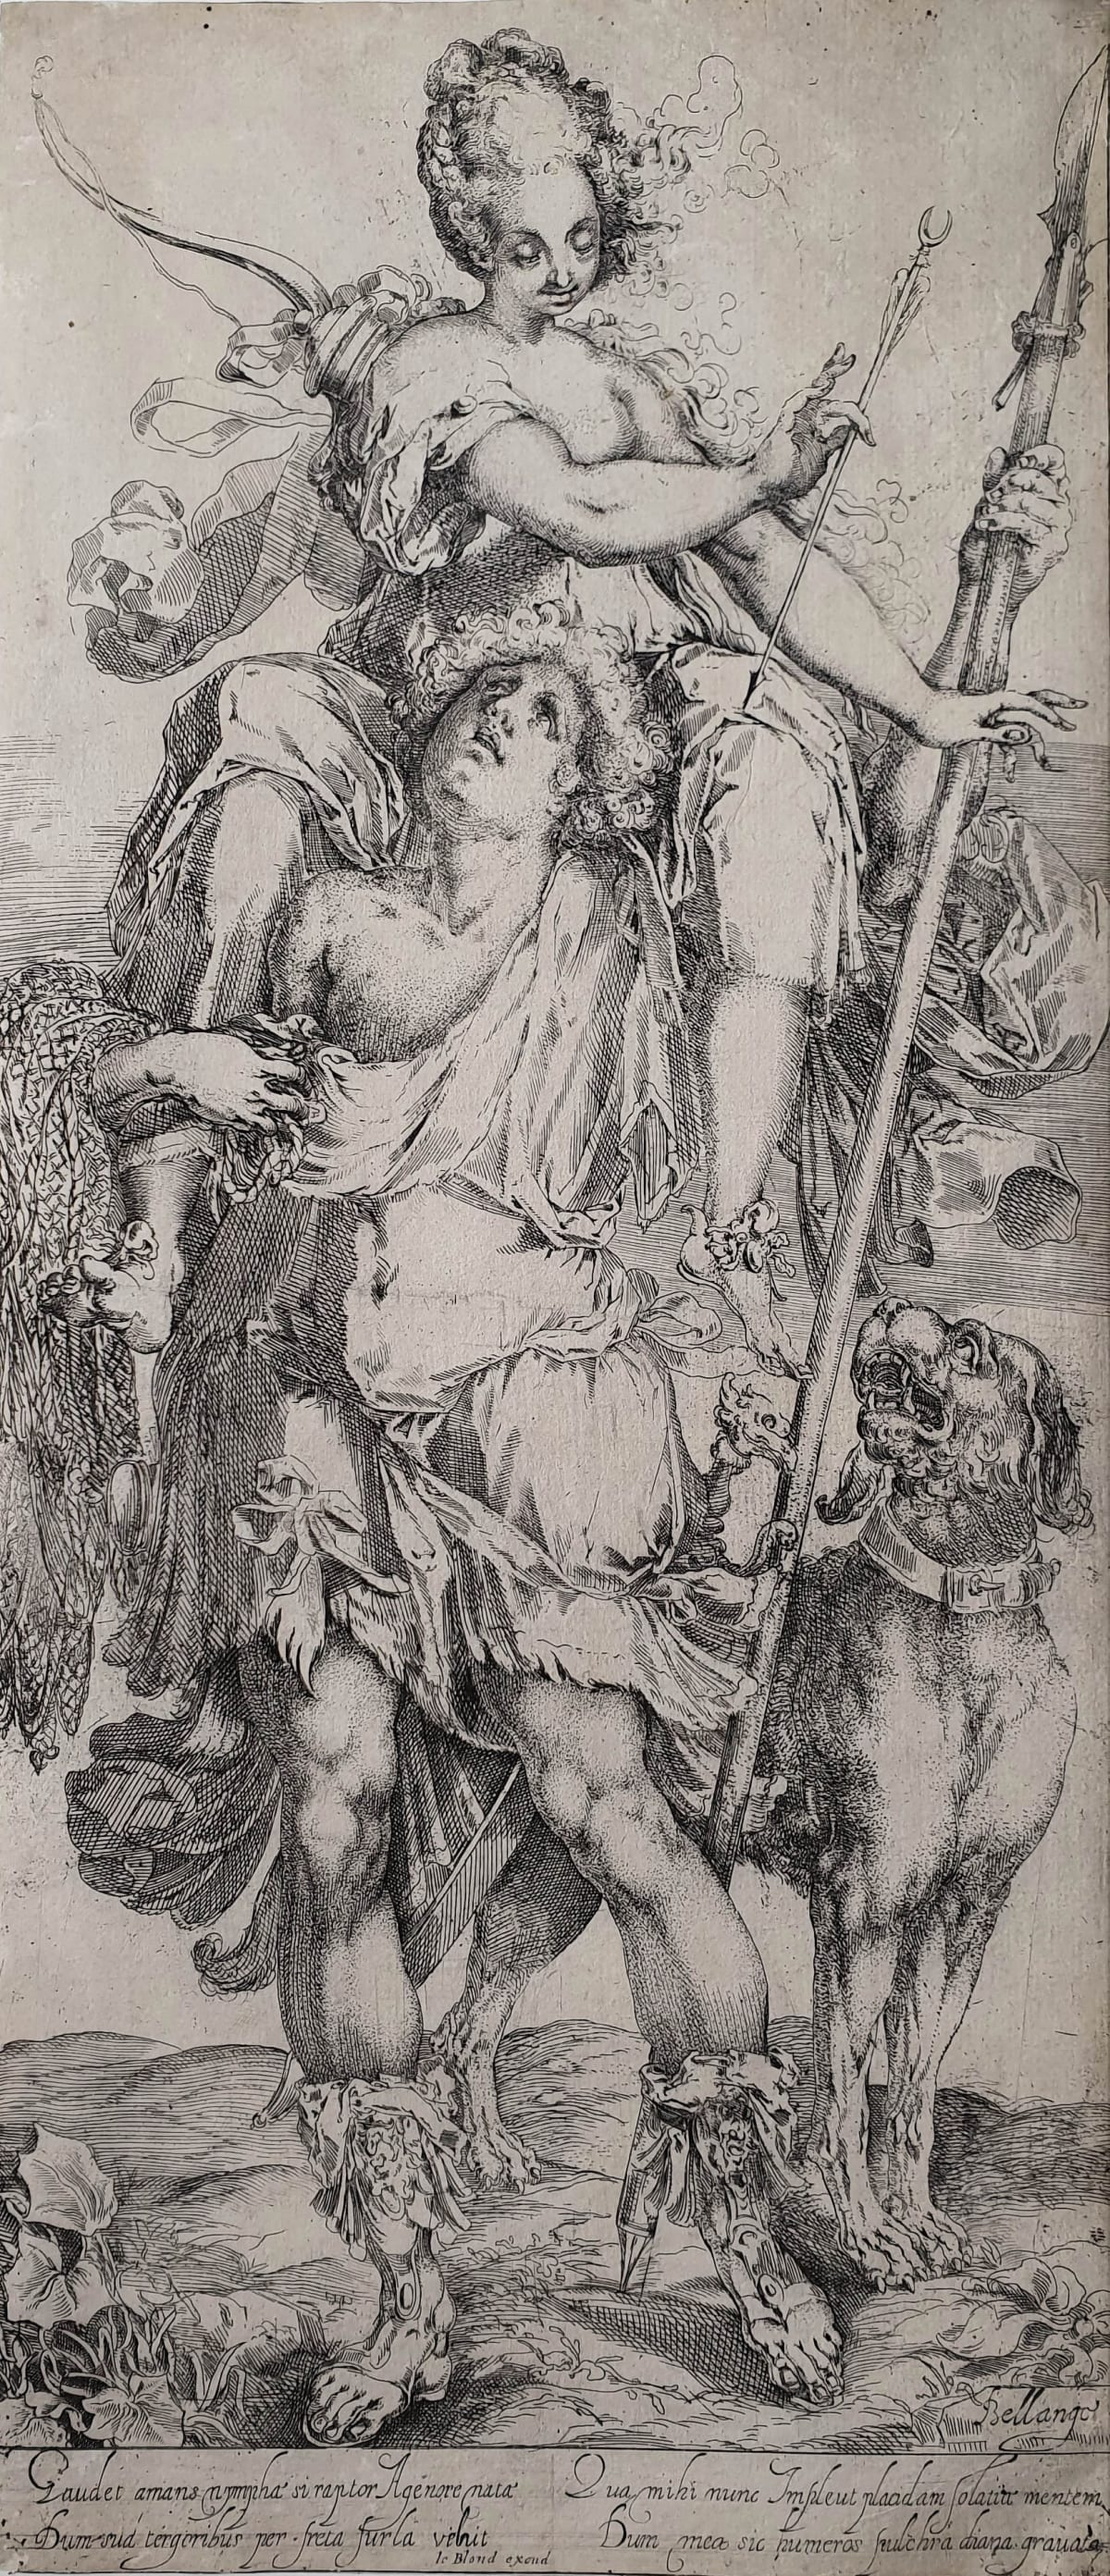 Jacques Bellange, Diana and Orion, 1595/1616 Etching and engraving 47 x 20.5 cm Walch 10, 3rd state (of 3), with 'Le Blond excud' added below the verses. Very rare.